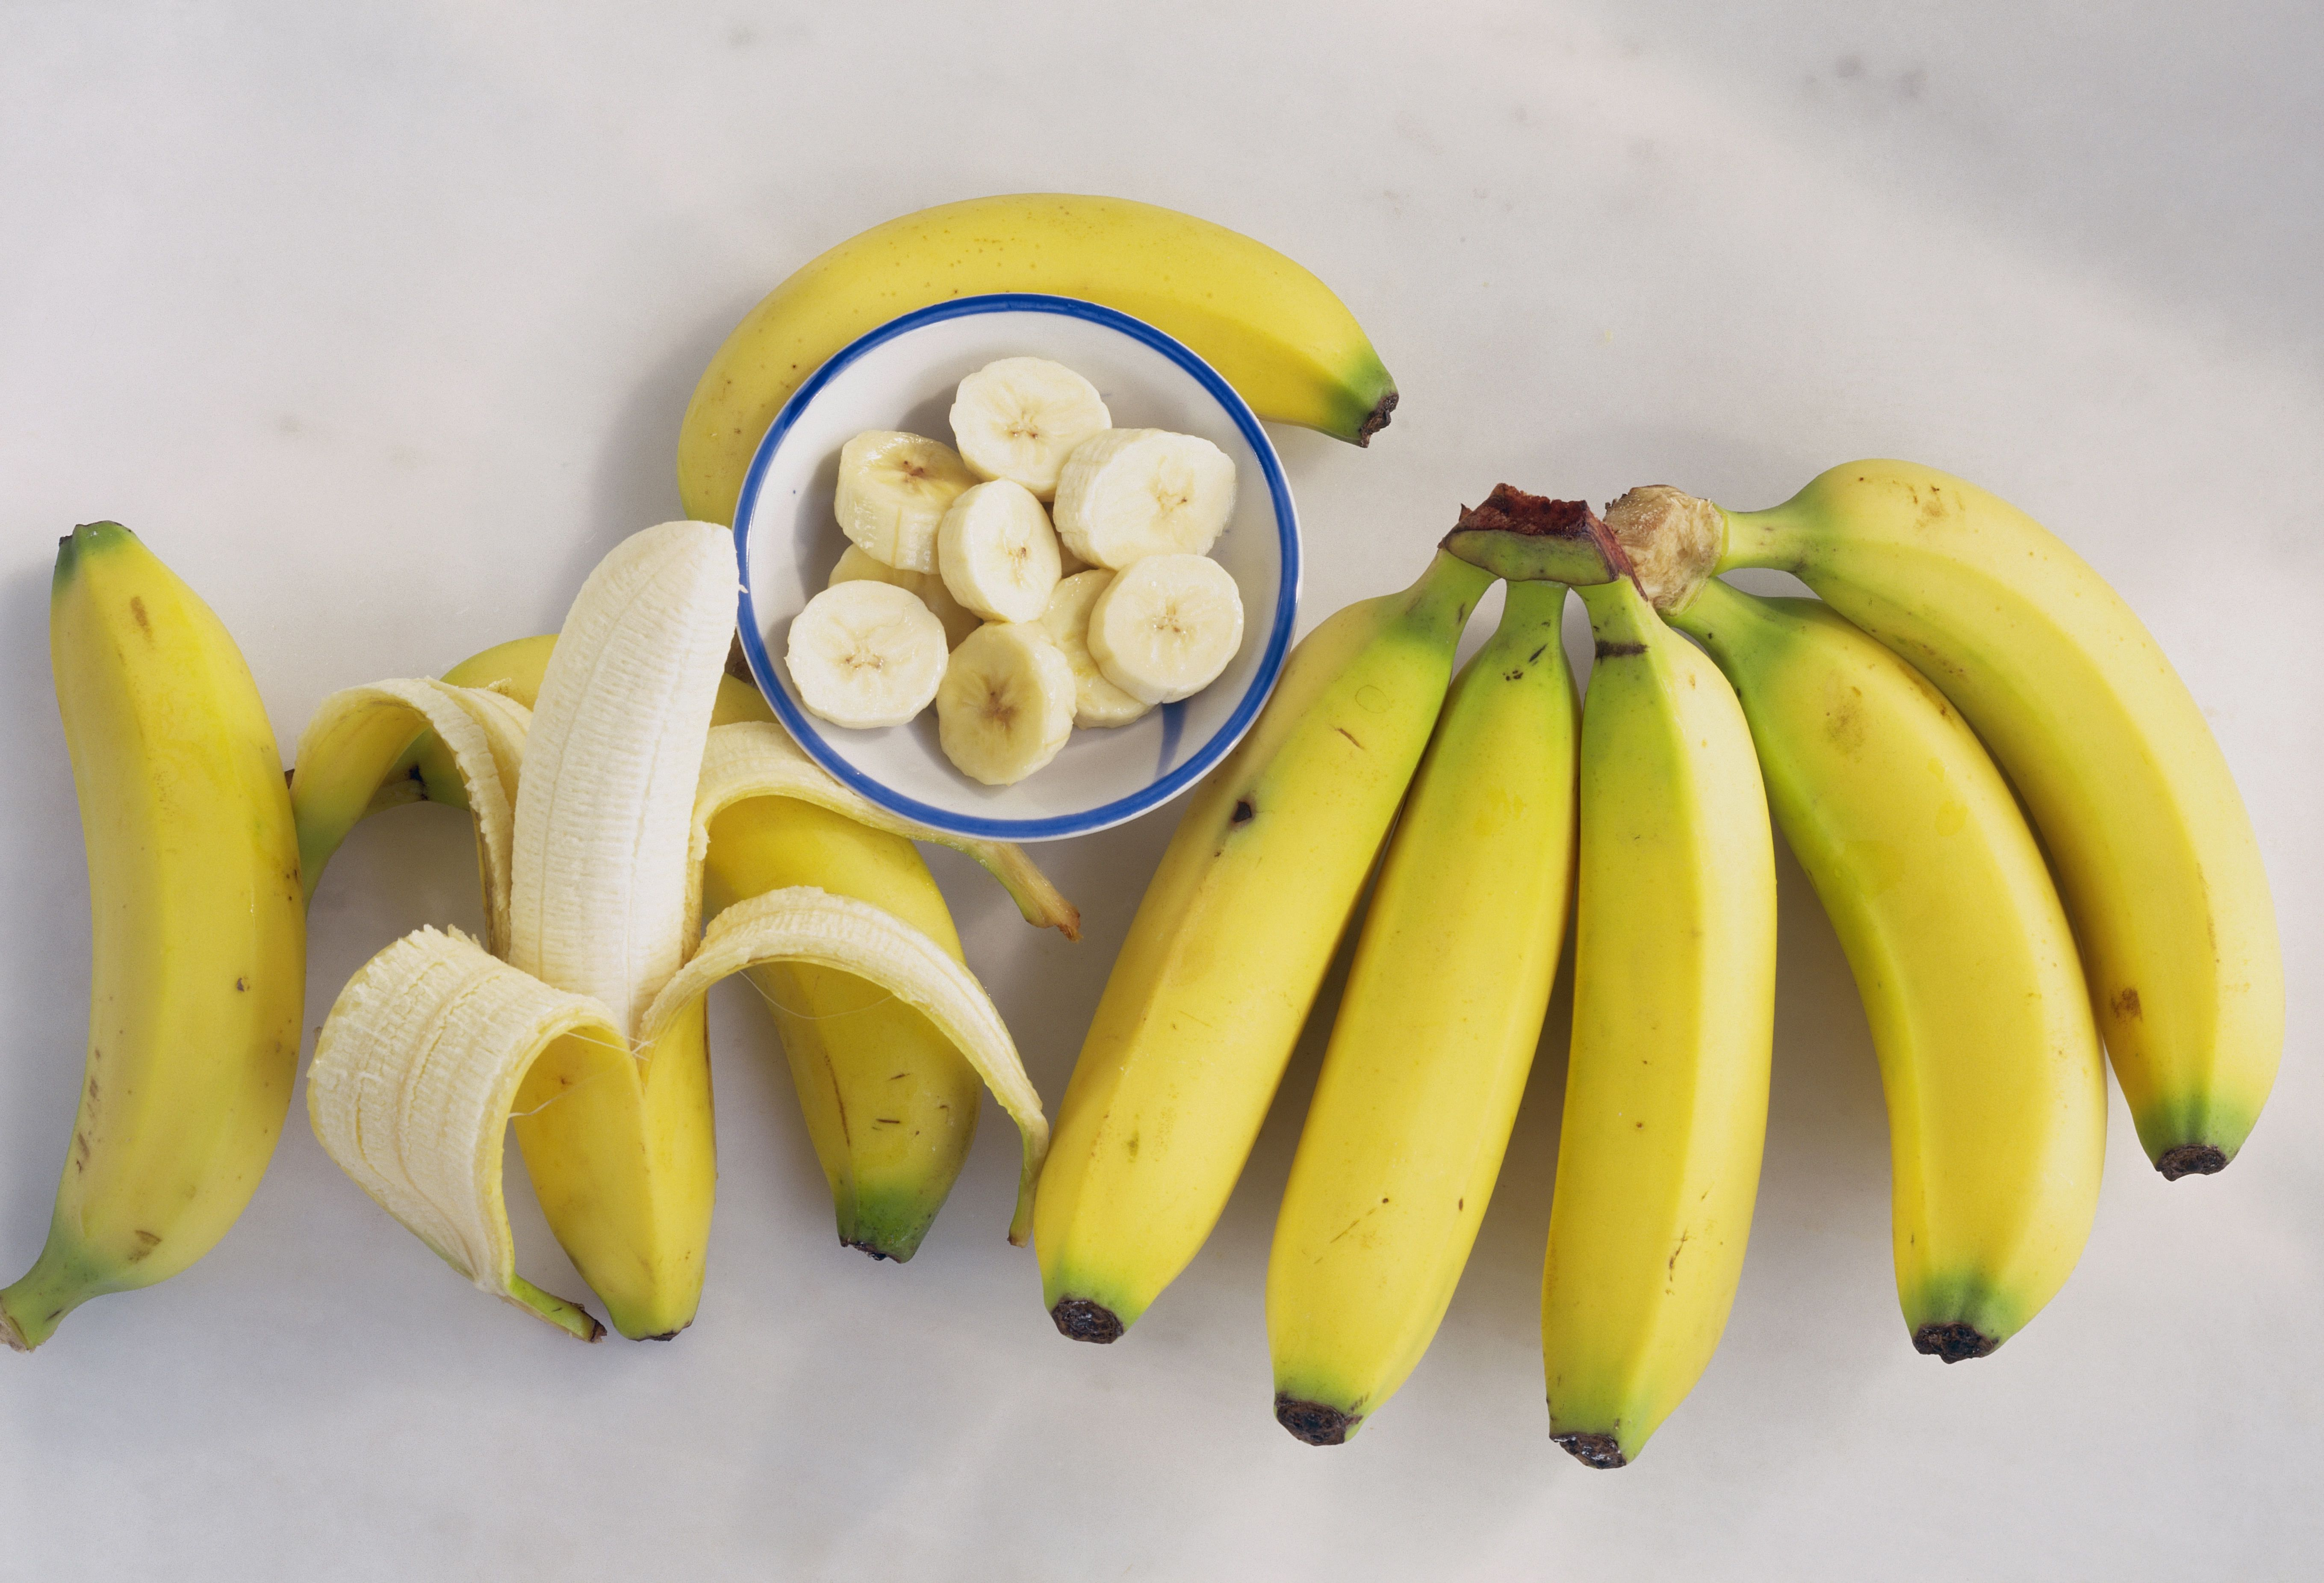 Peel the bananas and cut them into chunks before freezing. When you want ice cream, dump a couple handfuls into a food processor and whiz until they turn into creamy goodness.